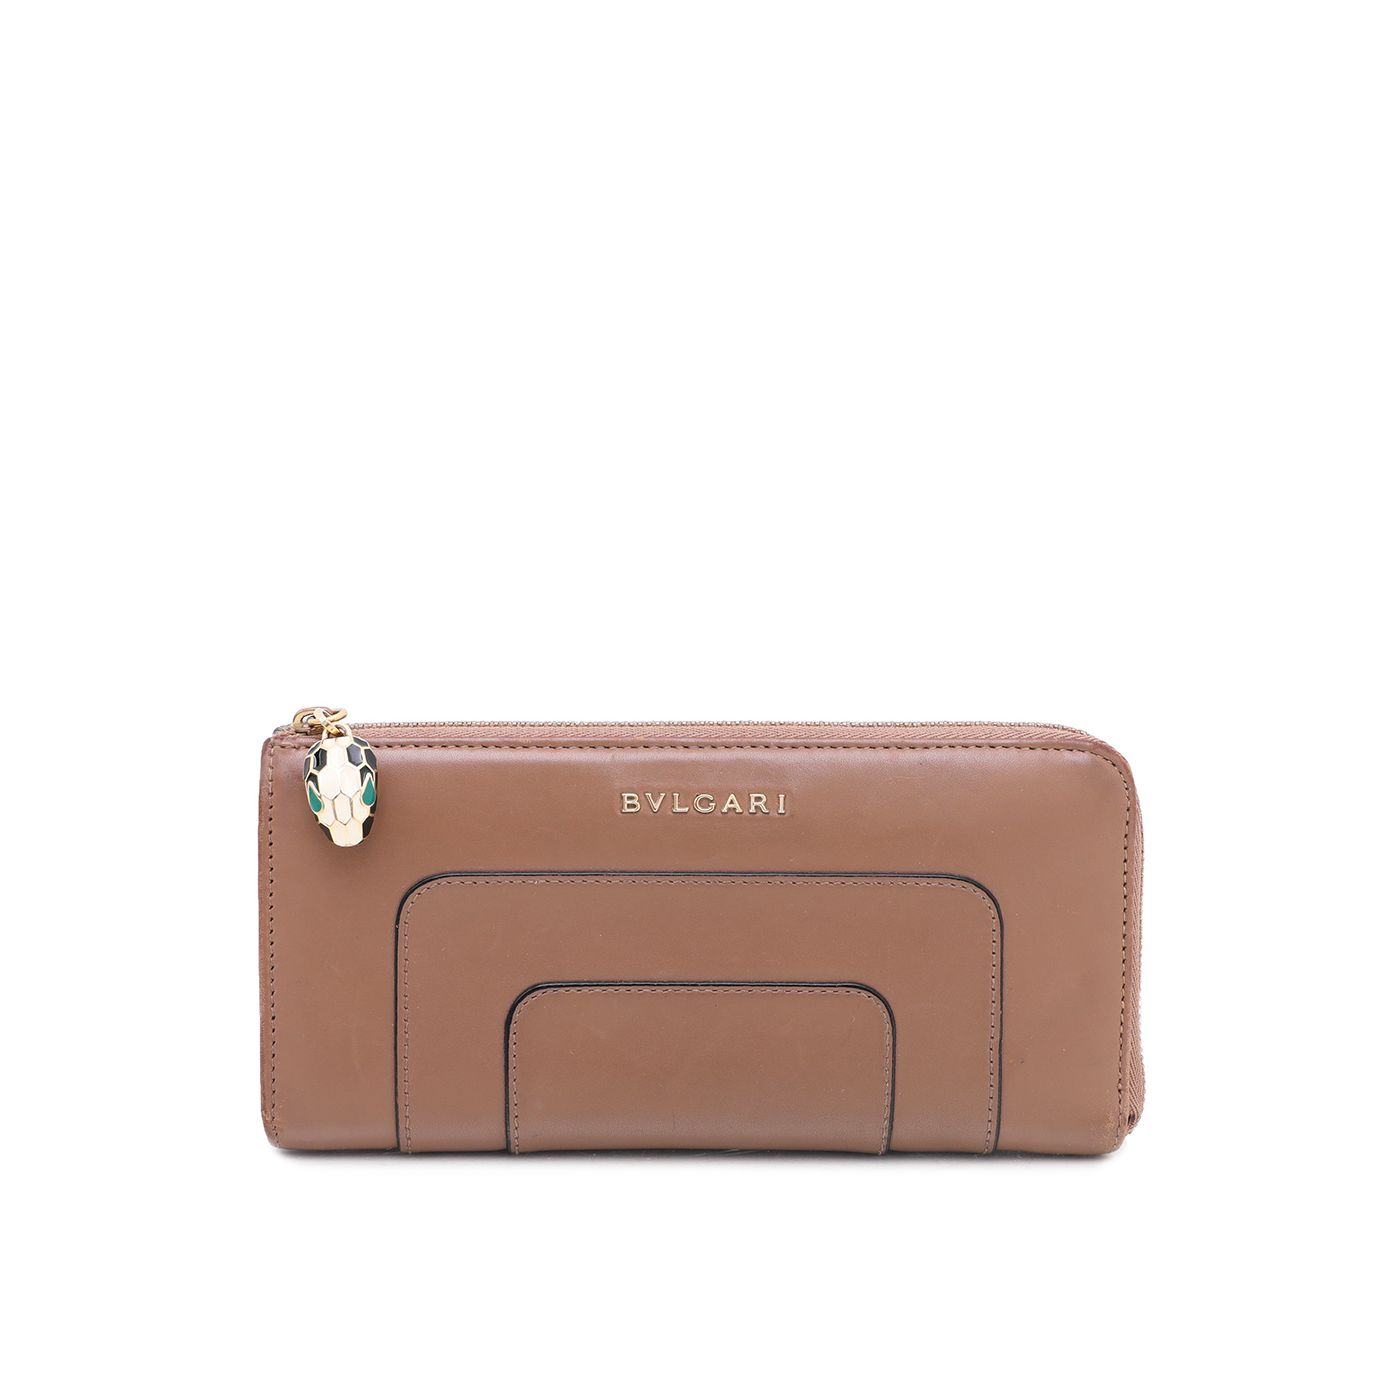 Bvlgari Brown Serpenti Forever Zipped Wallet